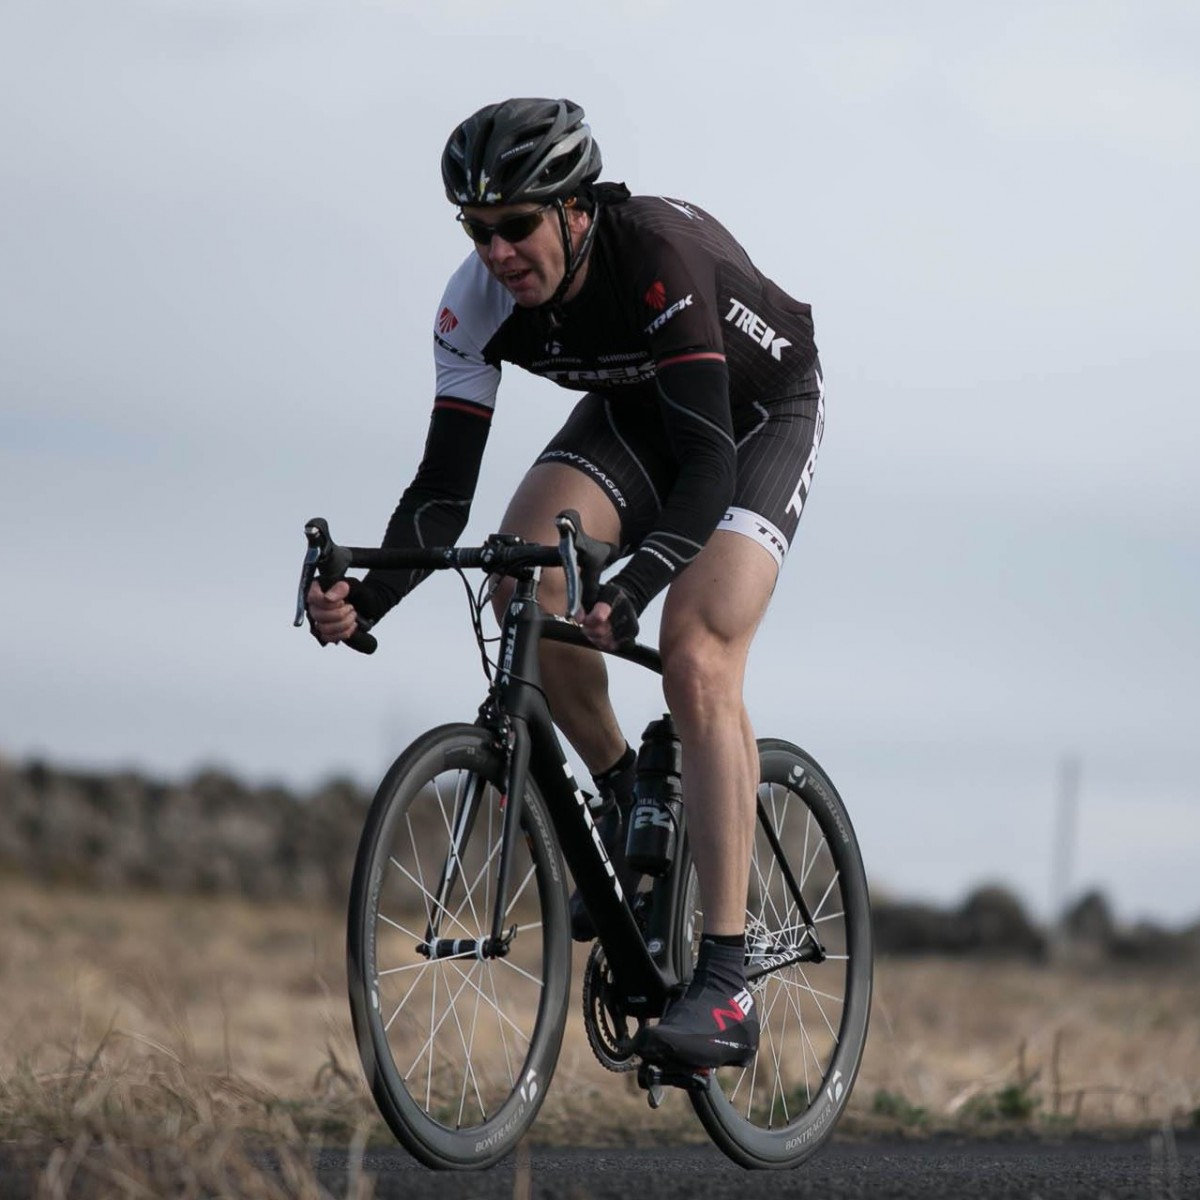 My Winter 2015-2016 Bike Trainer Recommendations